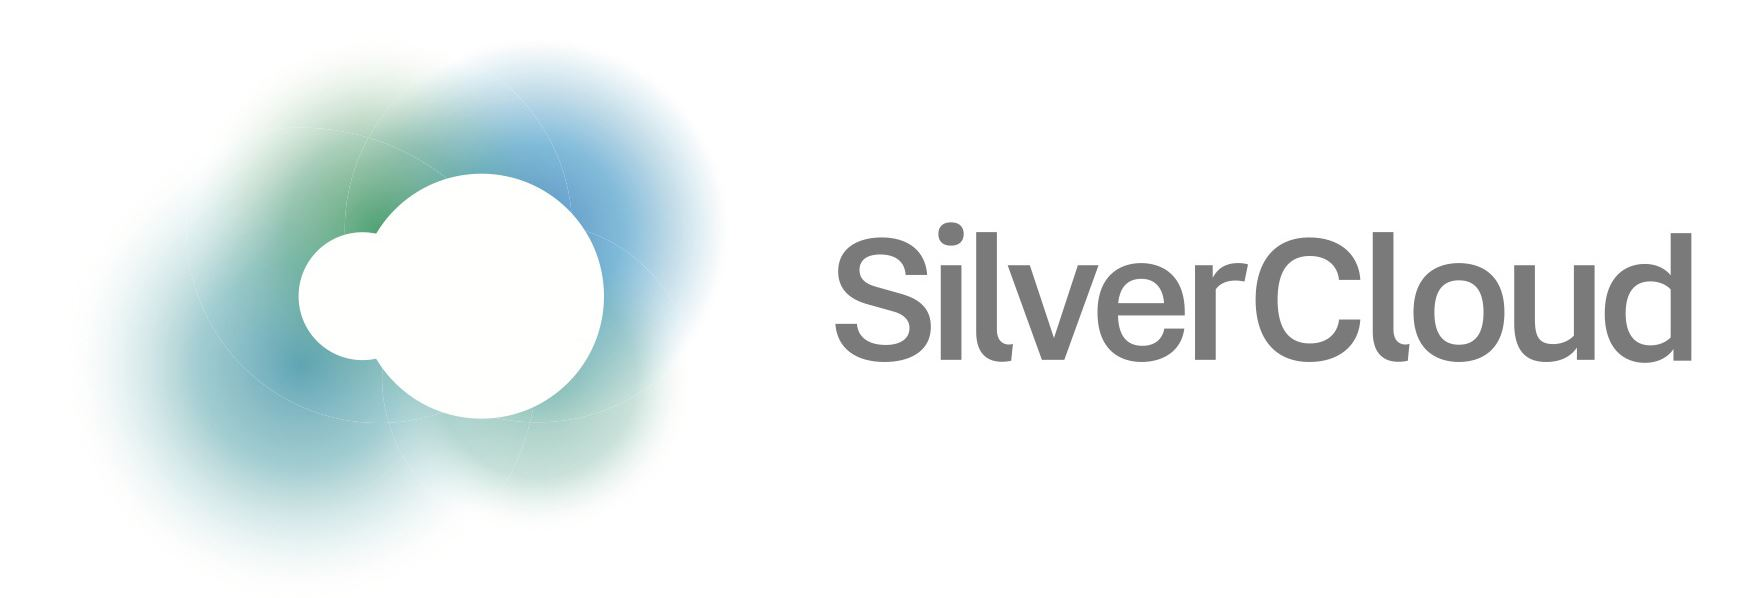 SilverCloud (opens in a new window)